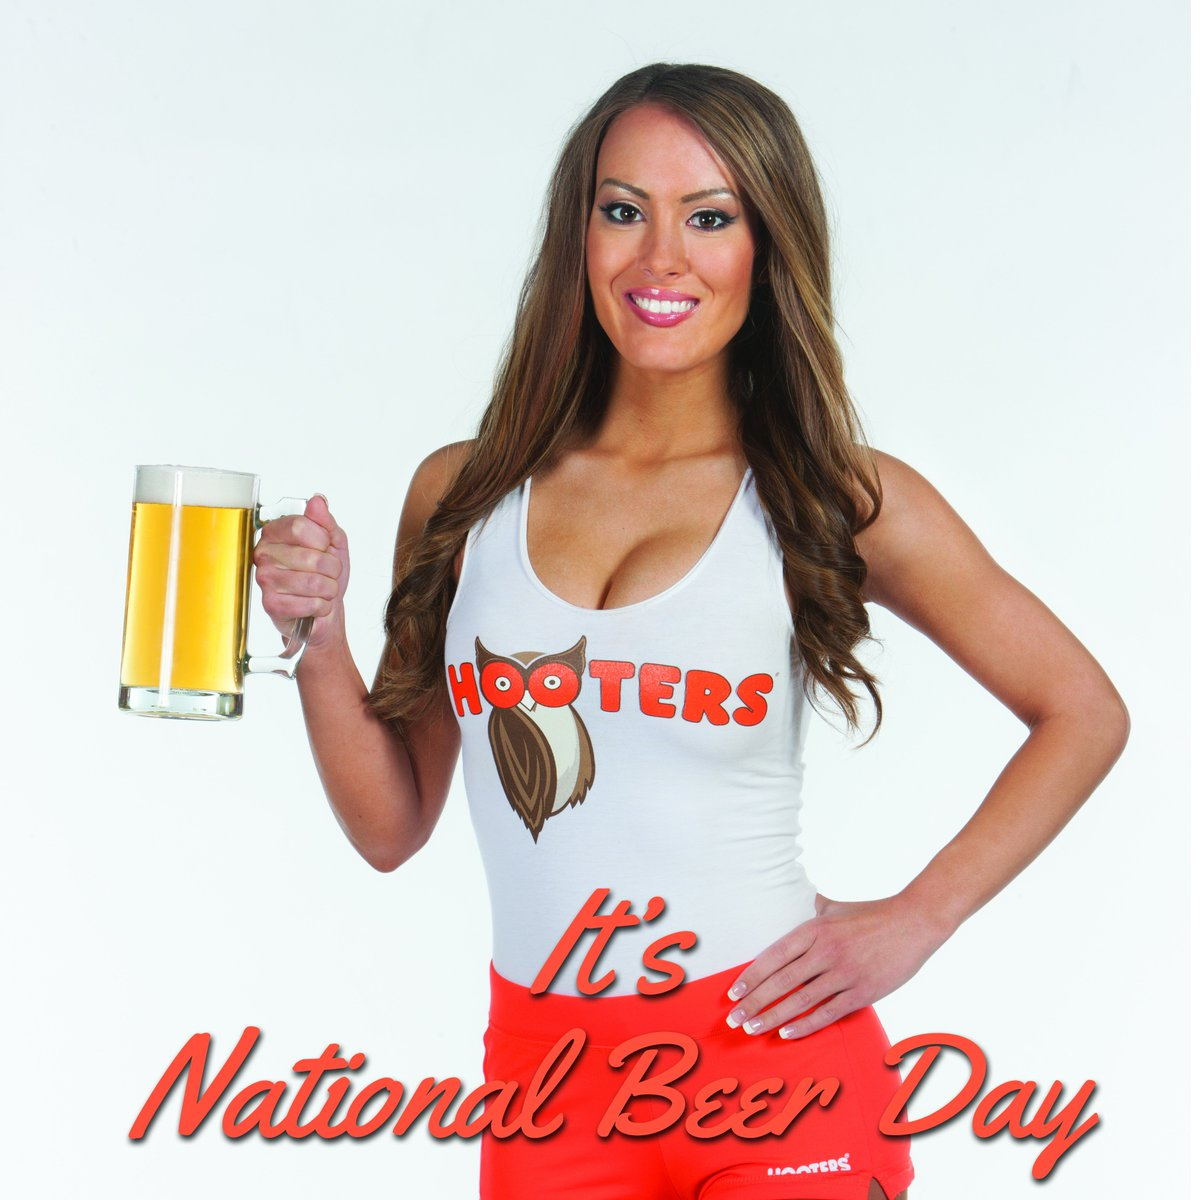 It's #NationalBeerDay! https://t.co/mEoi6PTd8M